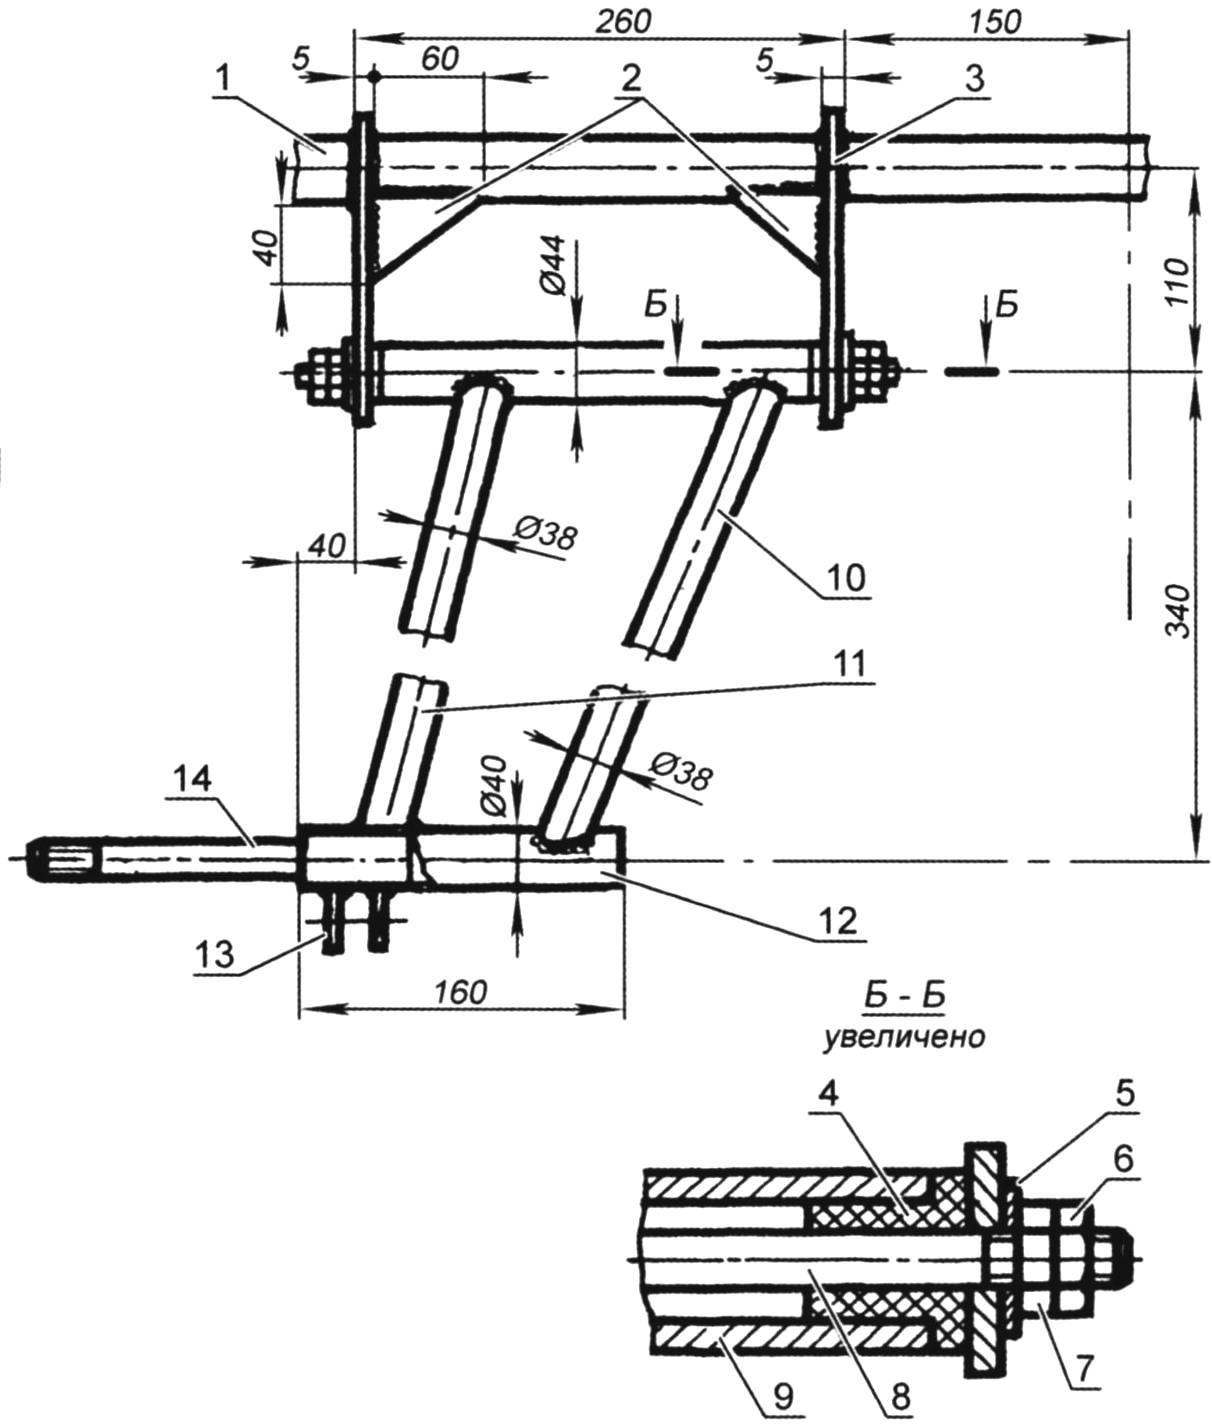 Rear suspension of the car